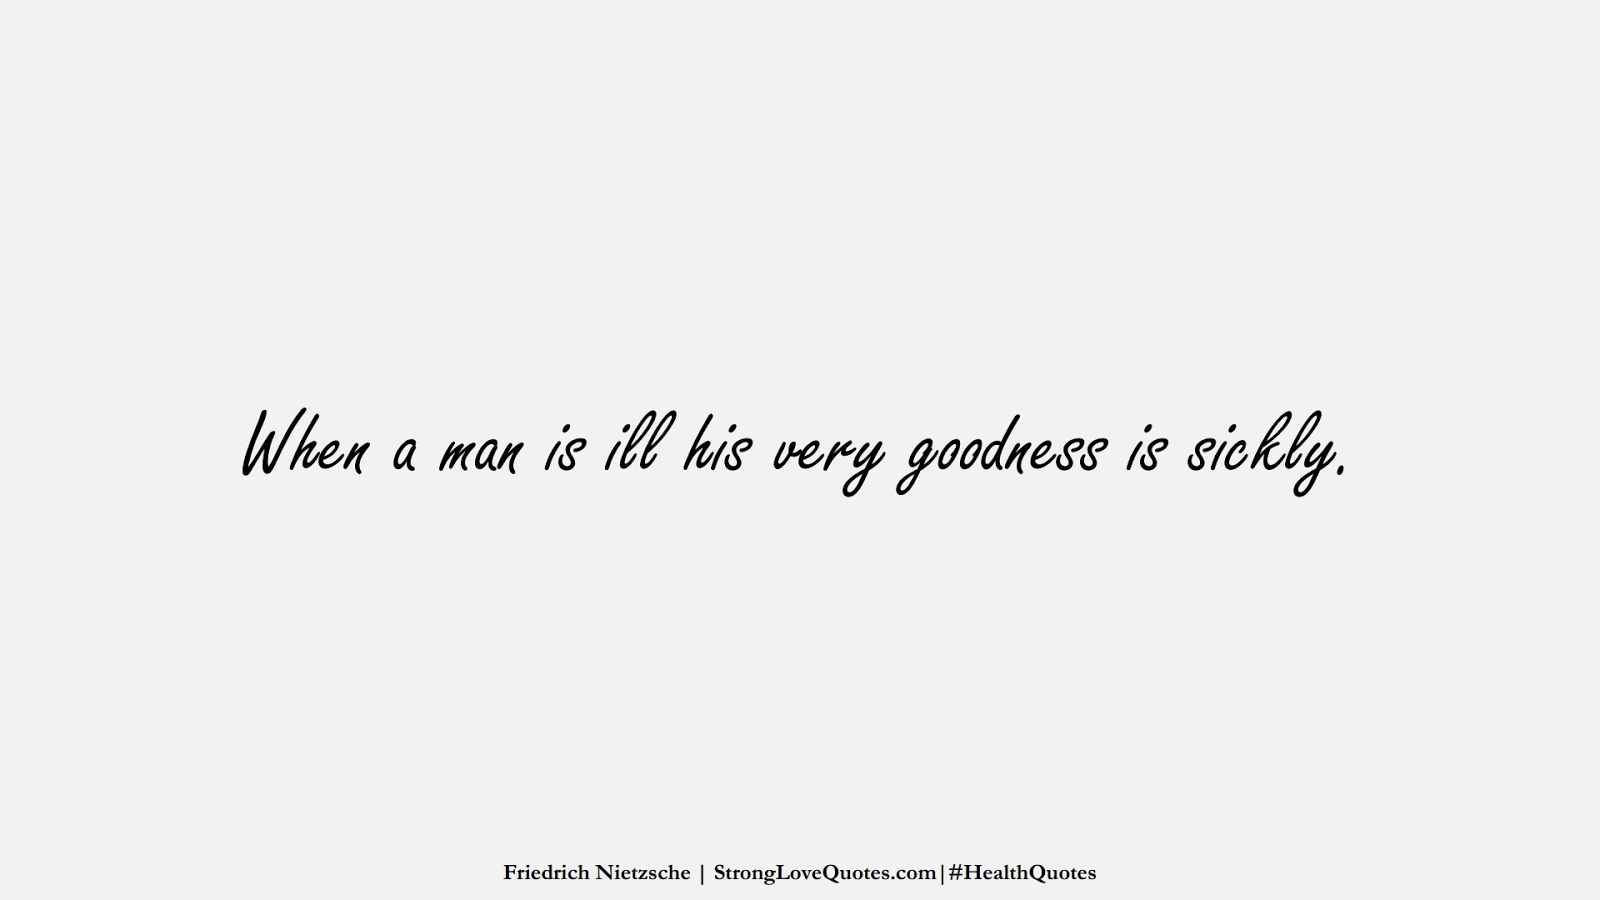 When a man is ill his very goodness is sickly. (Friedrich Nietzsche);  #HealthQuotes